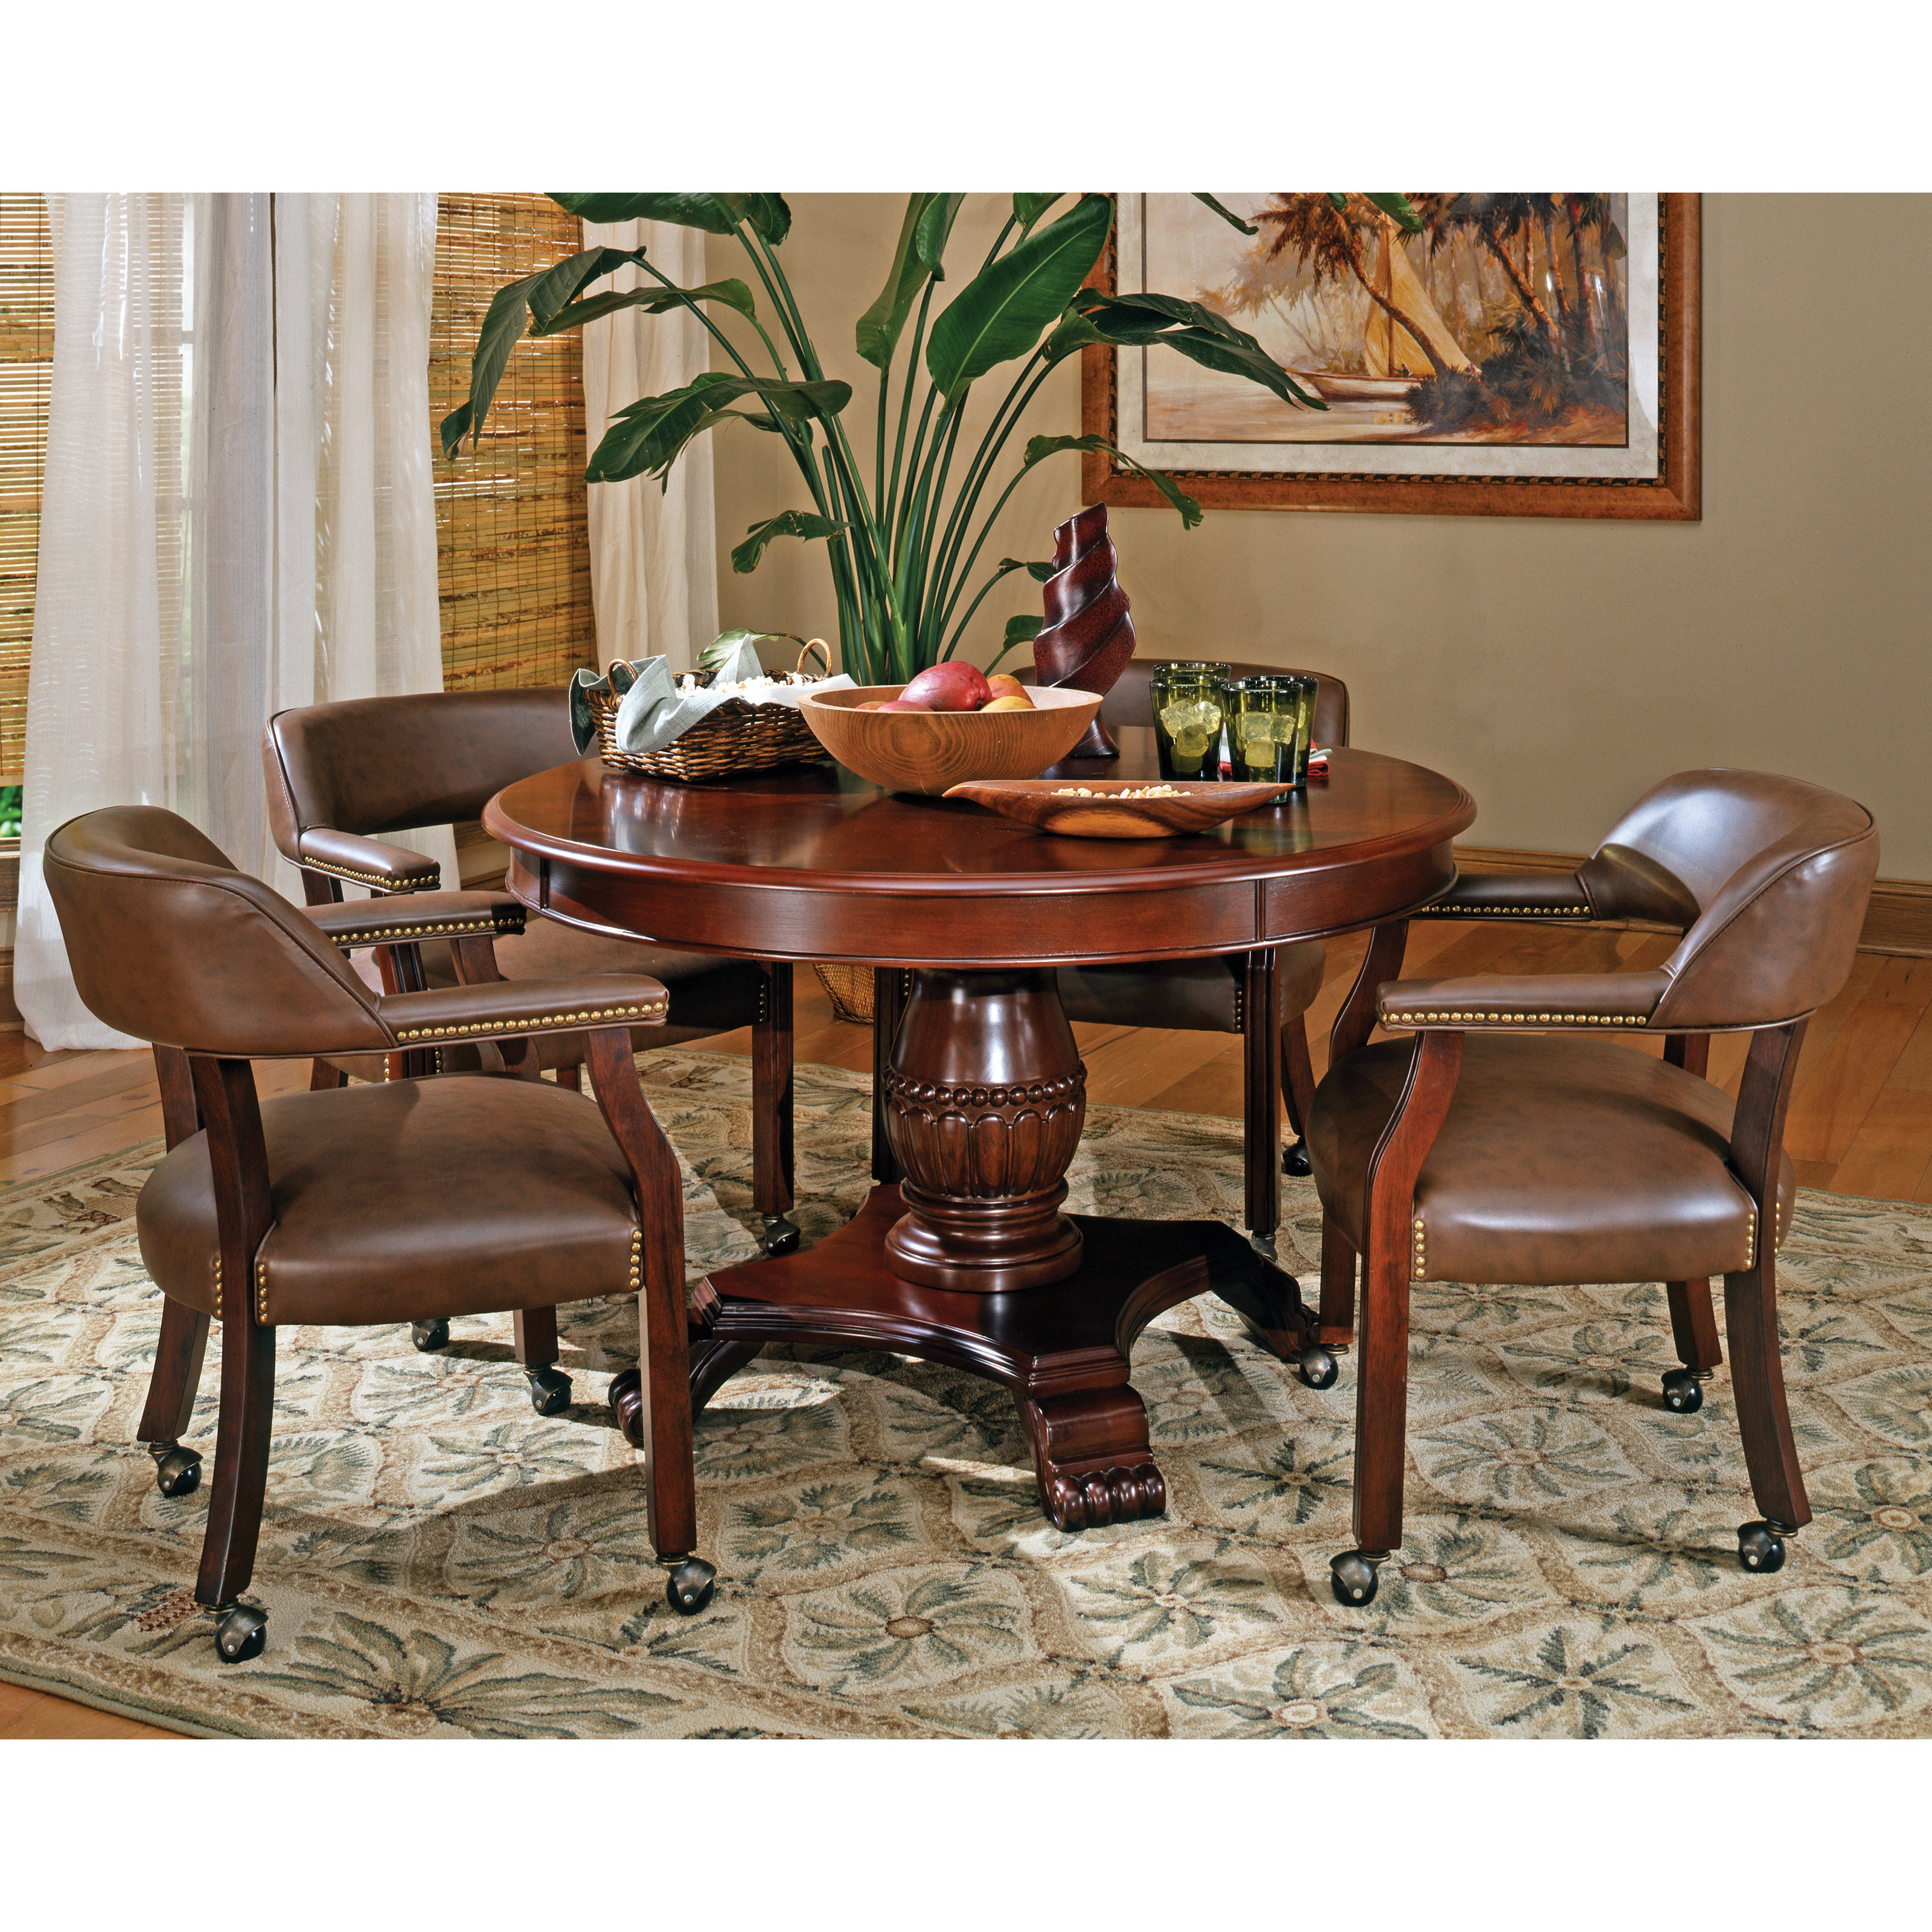 Steve Silver 5 Piece Tournament Dining Game Table Set With Caster Chairs    Cherry